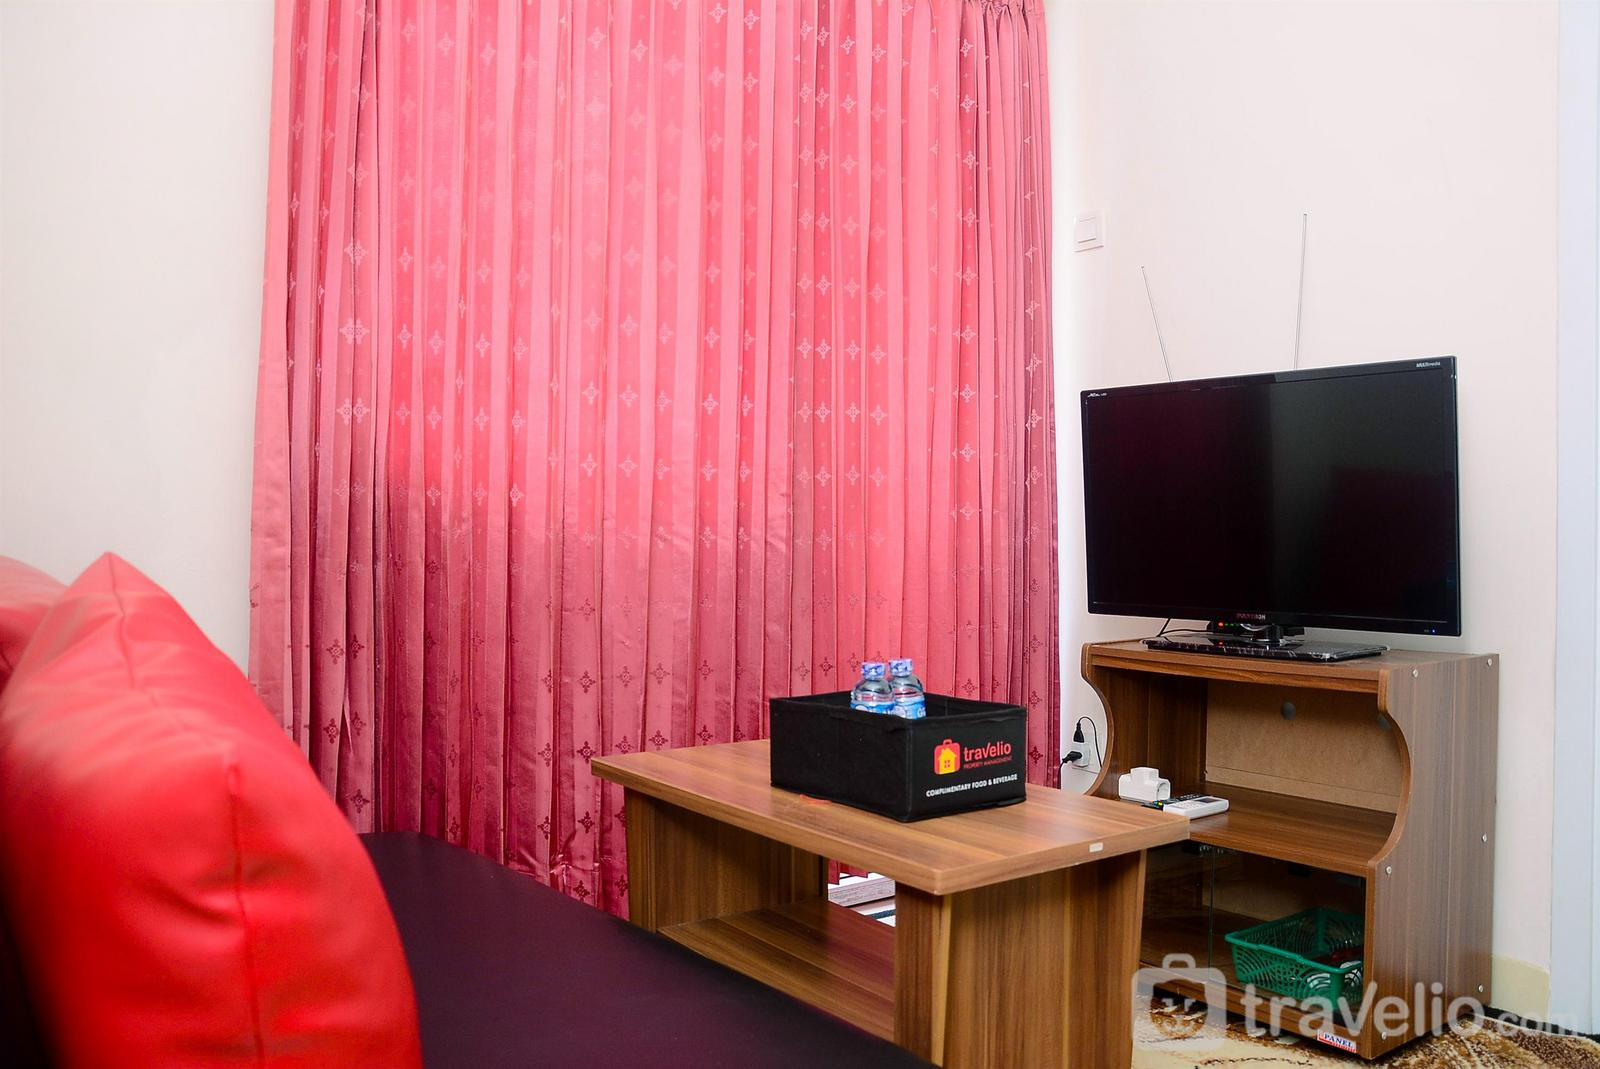 Apartemen Green Pramuka City - Cozy and Relax @ 2BR Green Pramuka City Apartment By Travelio